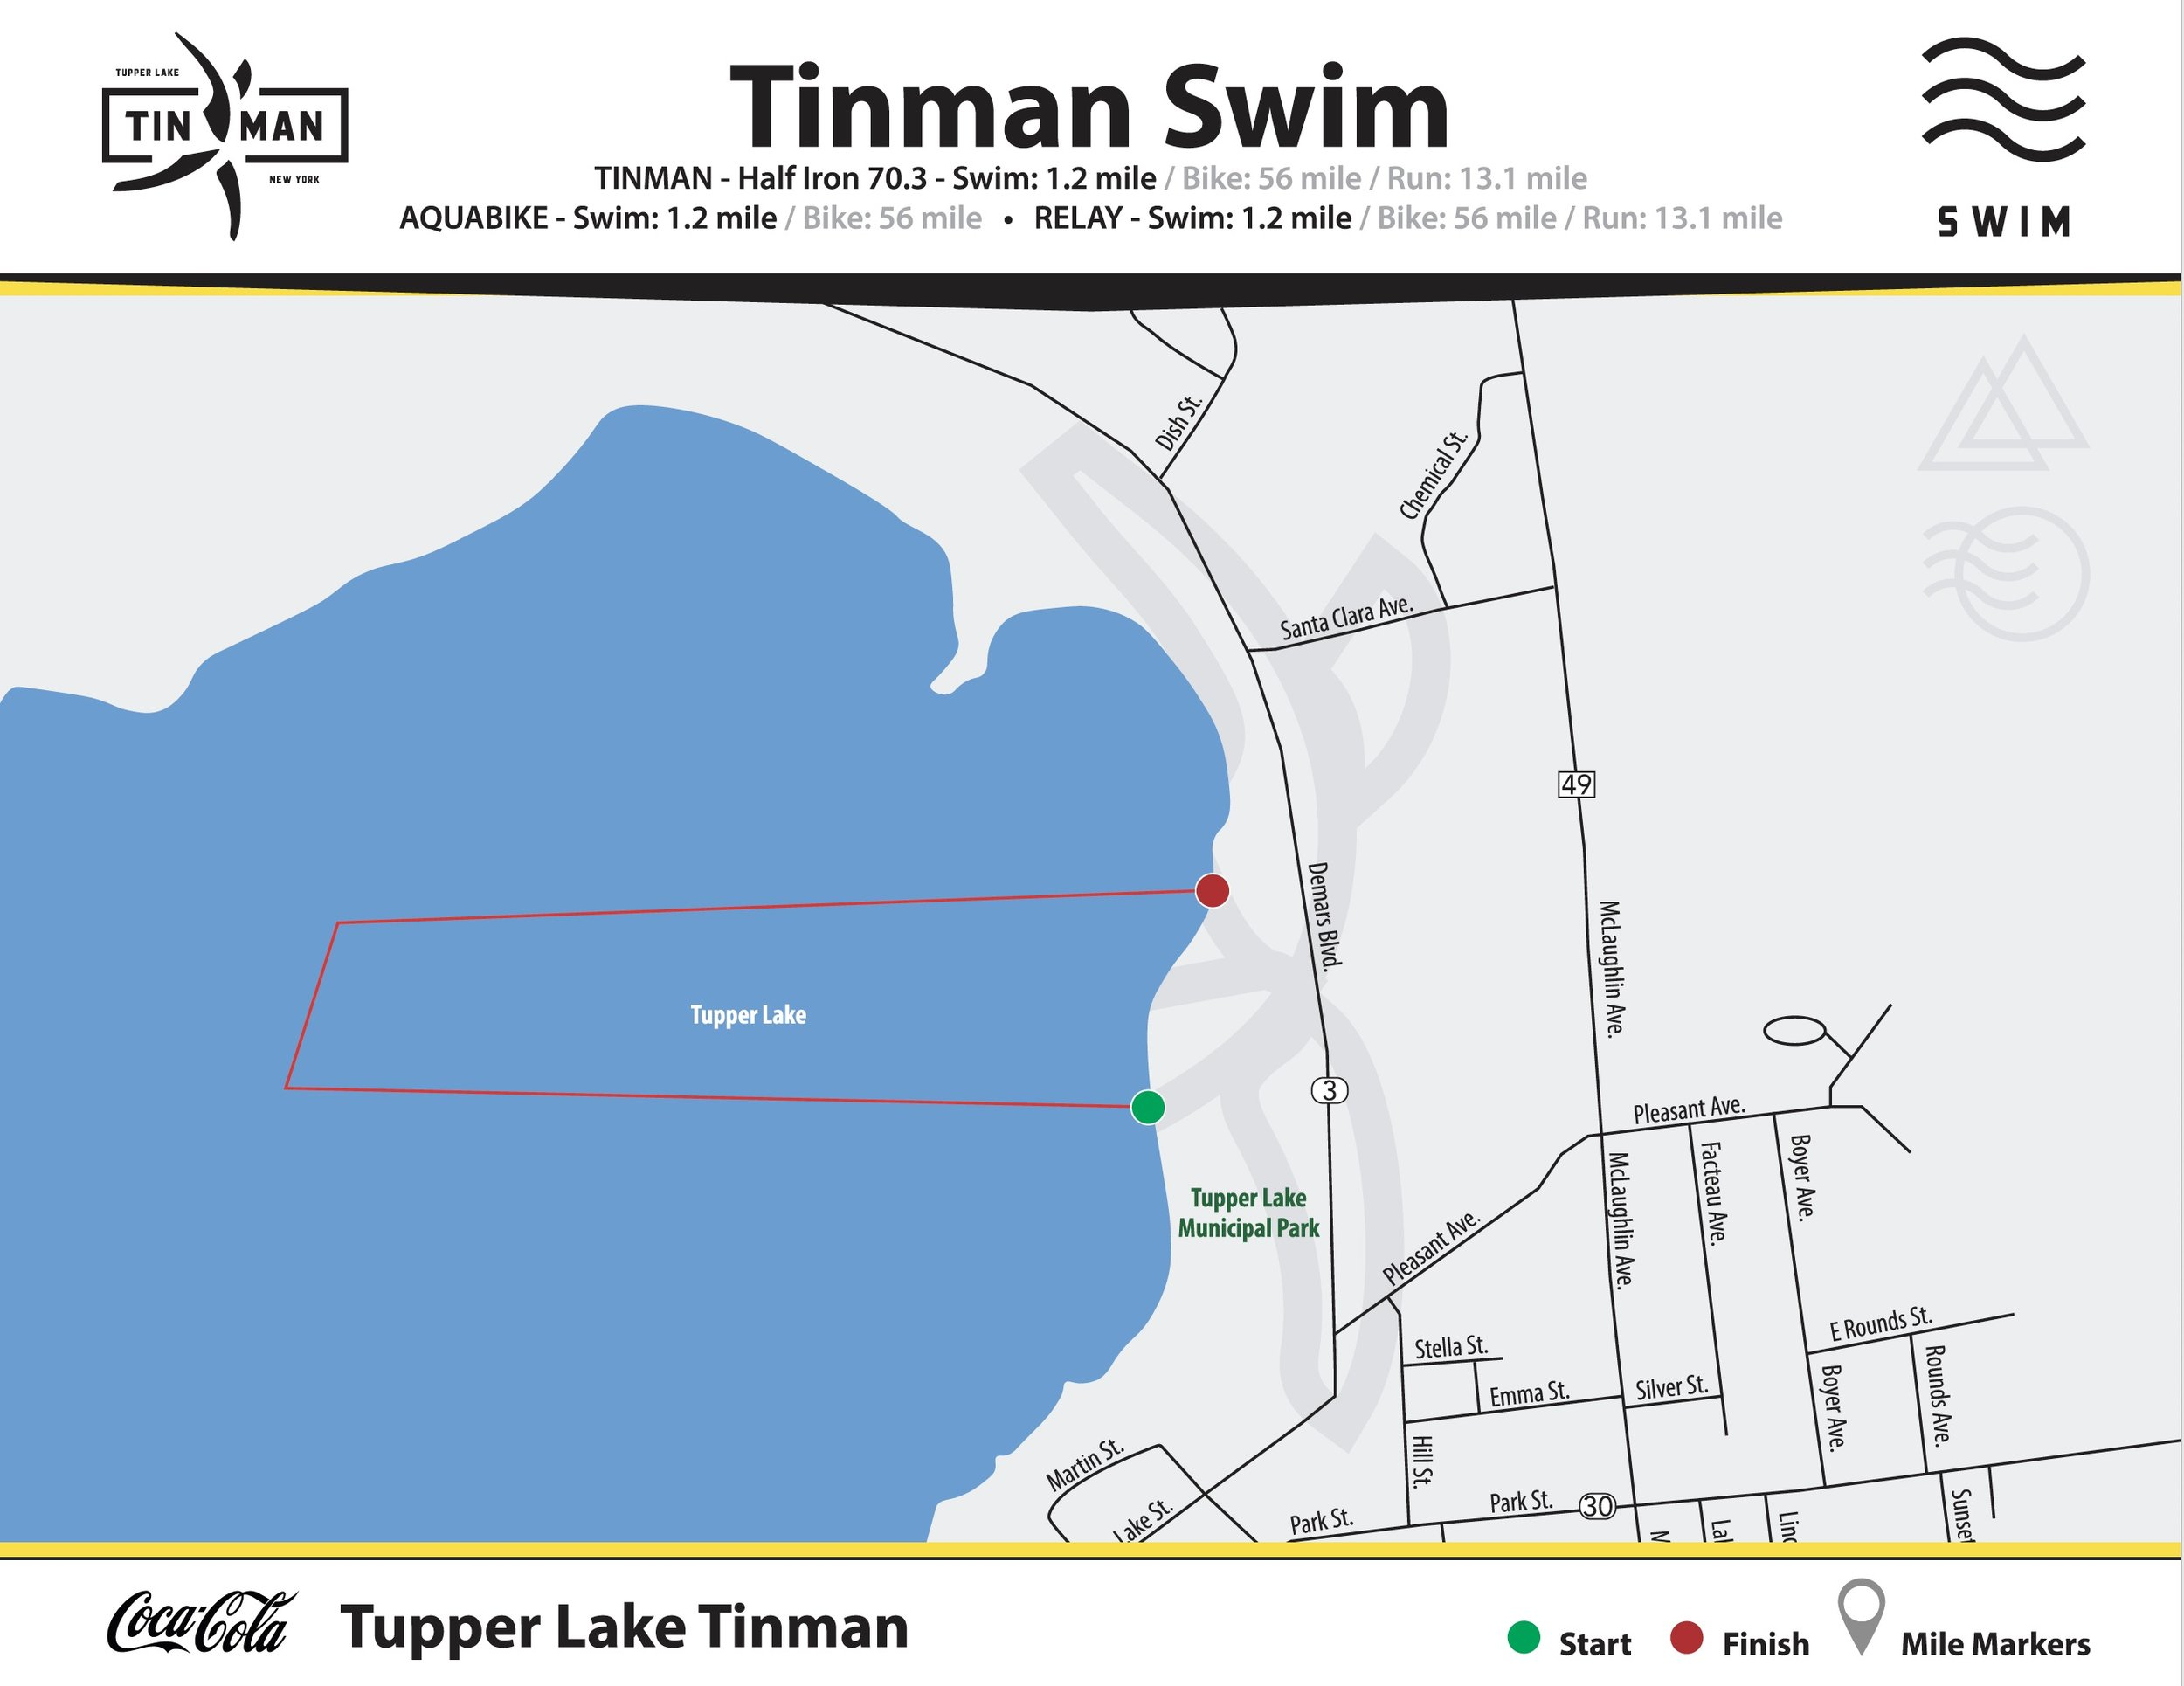 tinman_swim_map